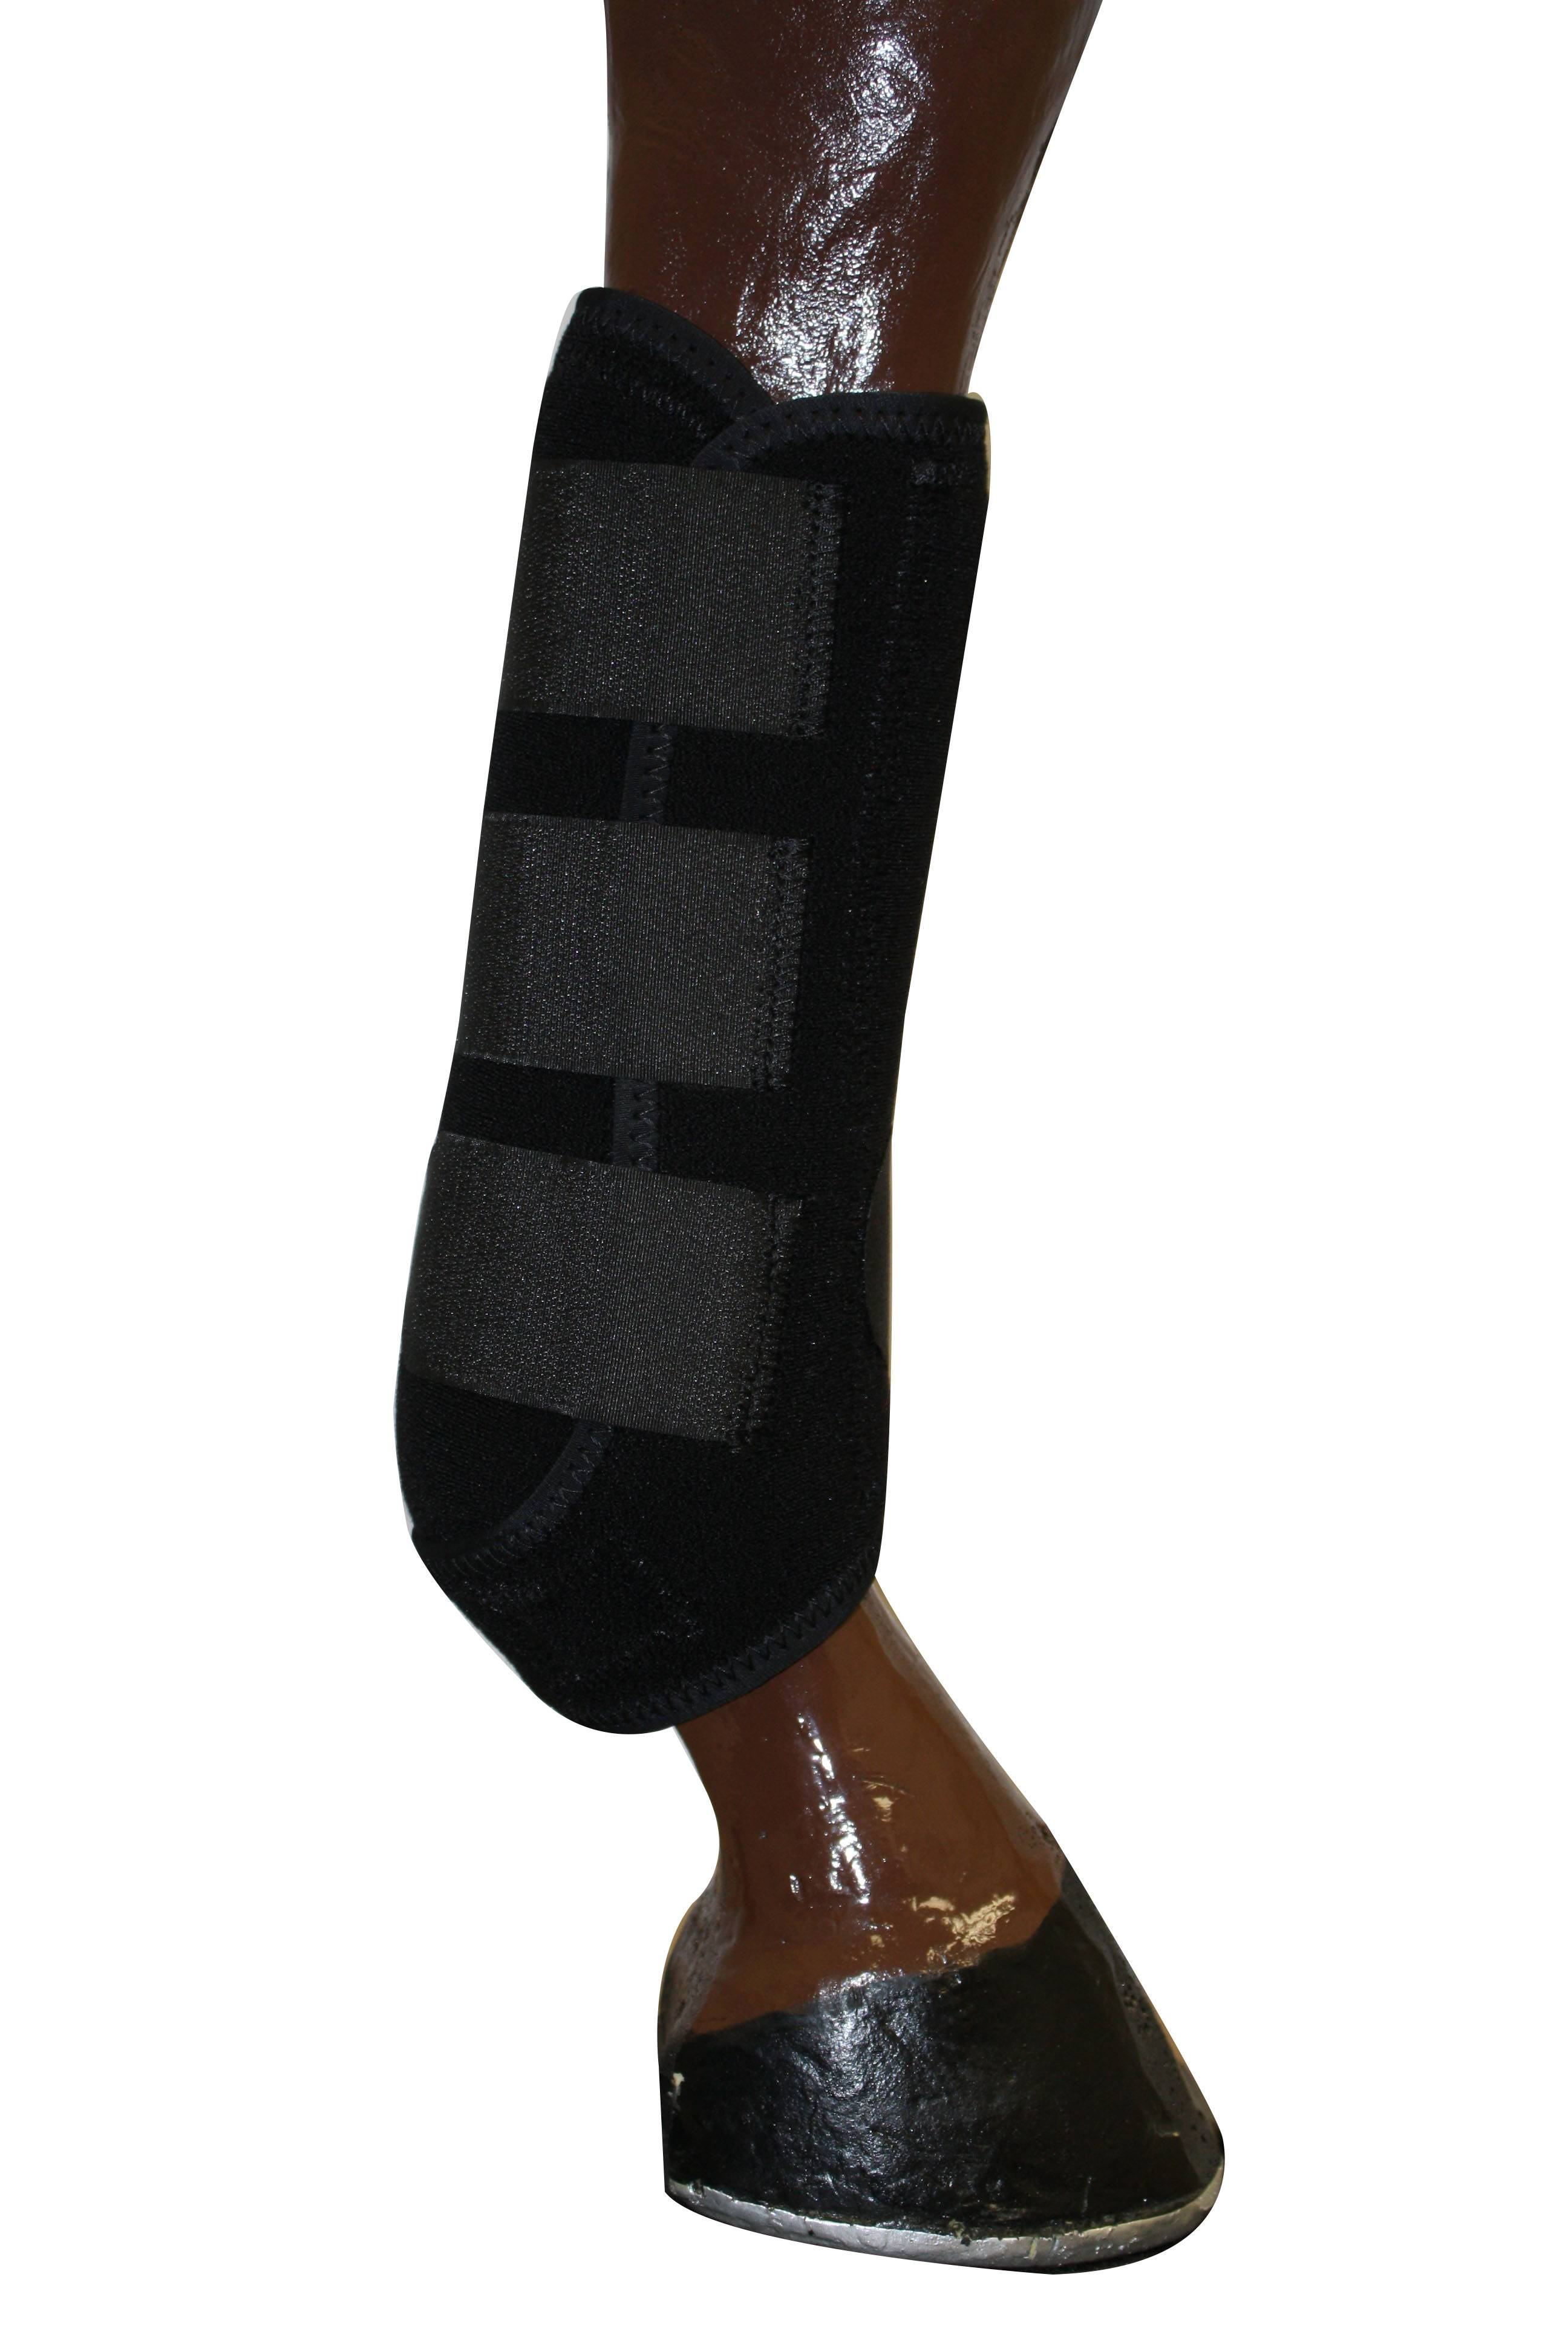 Equi-Sky By Lami-Cell Neoprene Hind Protective Boot